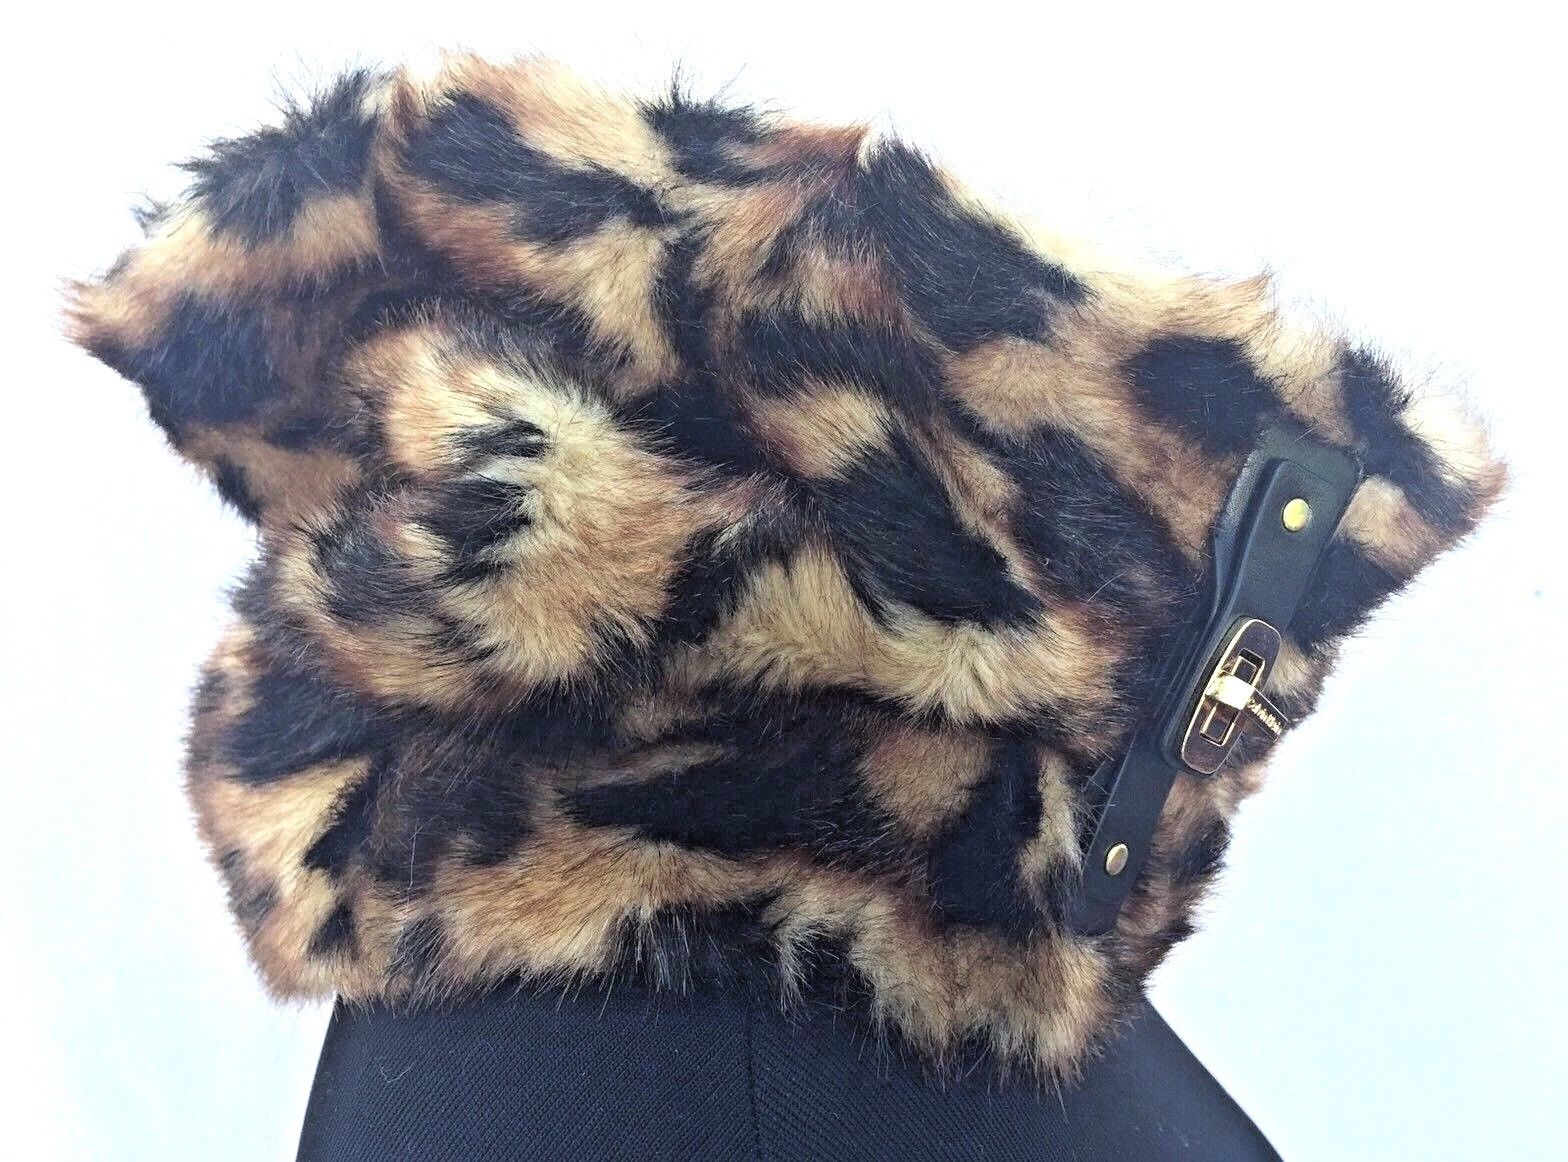 CALVIN KLEIN WOMEN'S Brown FAUX FUR Elegant Buckled Cheetah NECK WARMER Cowl WOW